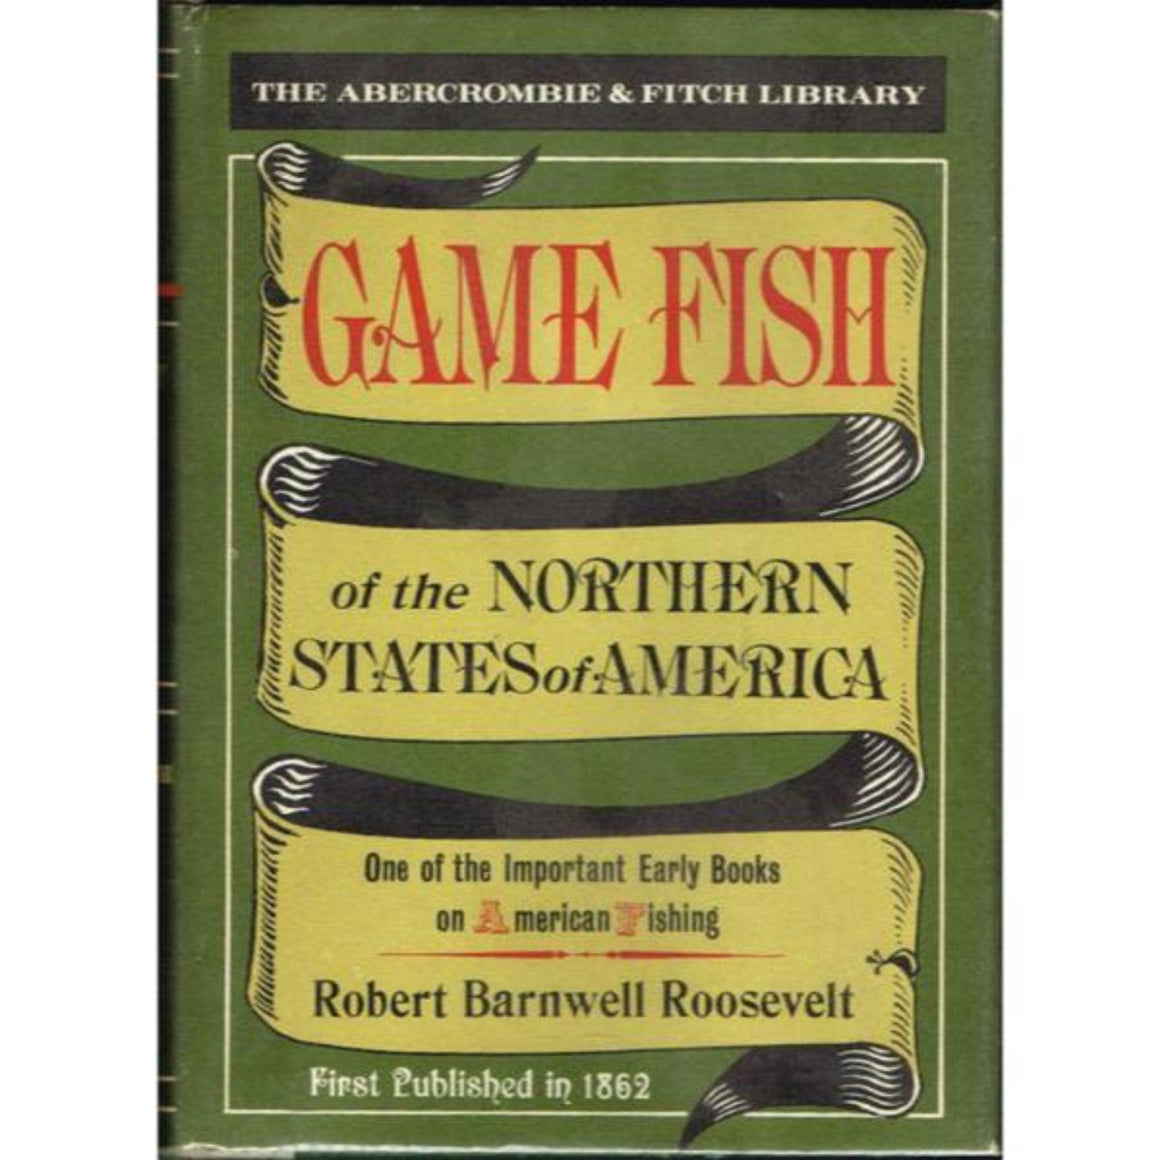 The A&F Library Game Fish of the Northern States of America